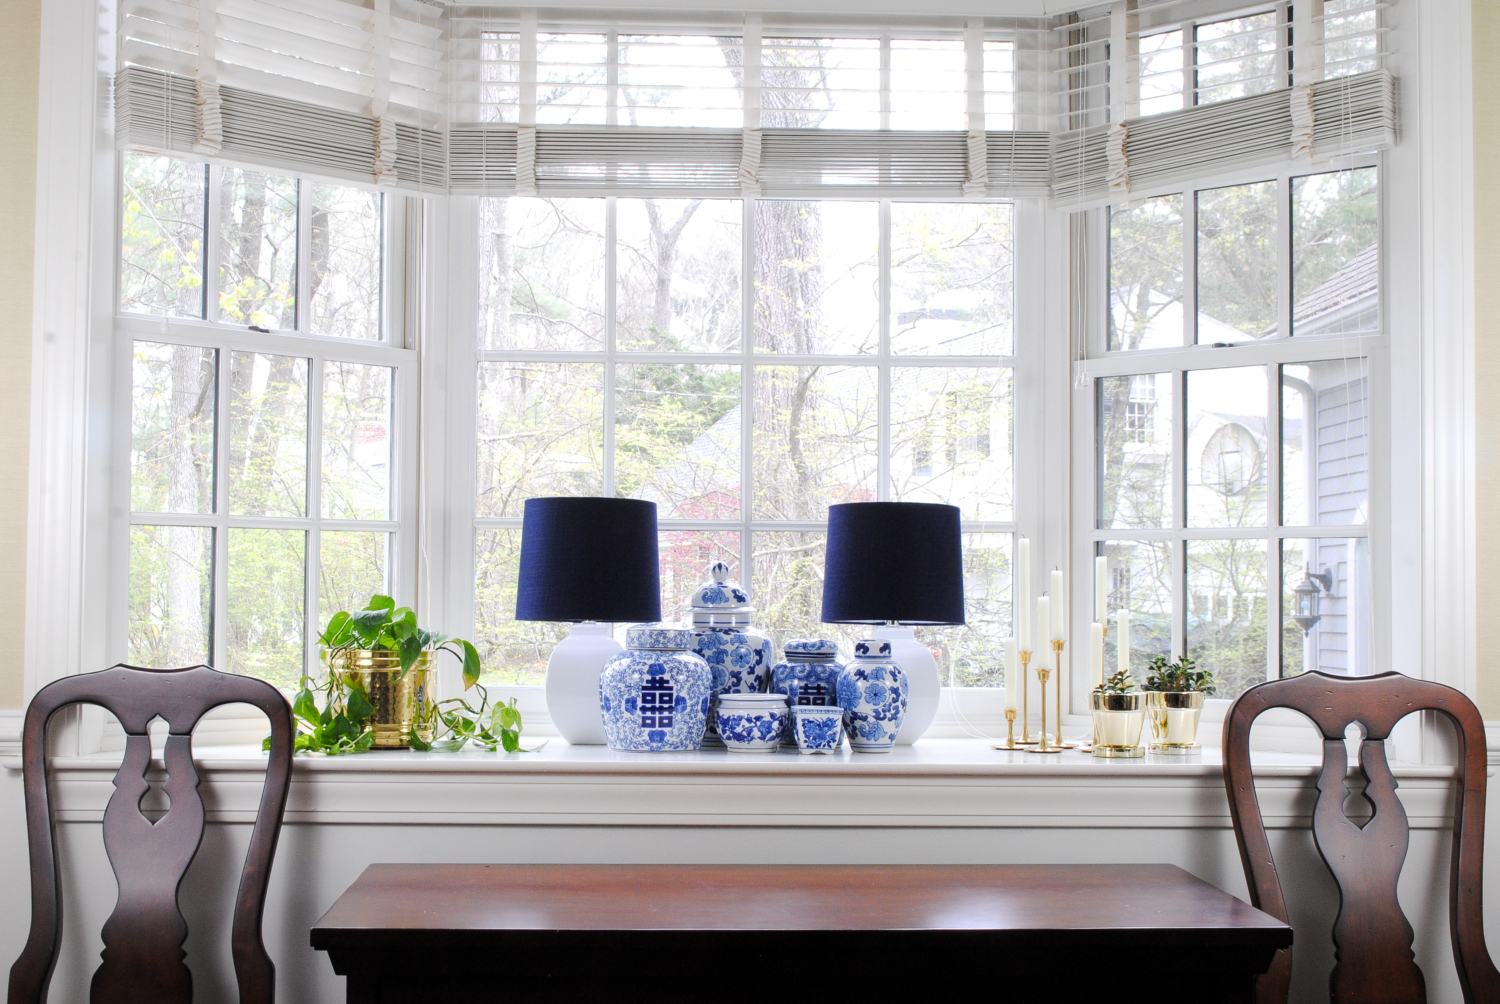 Blue and white pottery ginger jars collection, how to decorate a bay window, and how you can get this look on a budget!